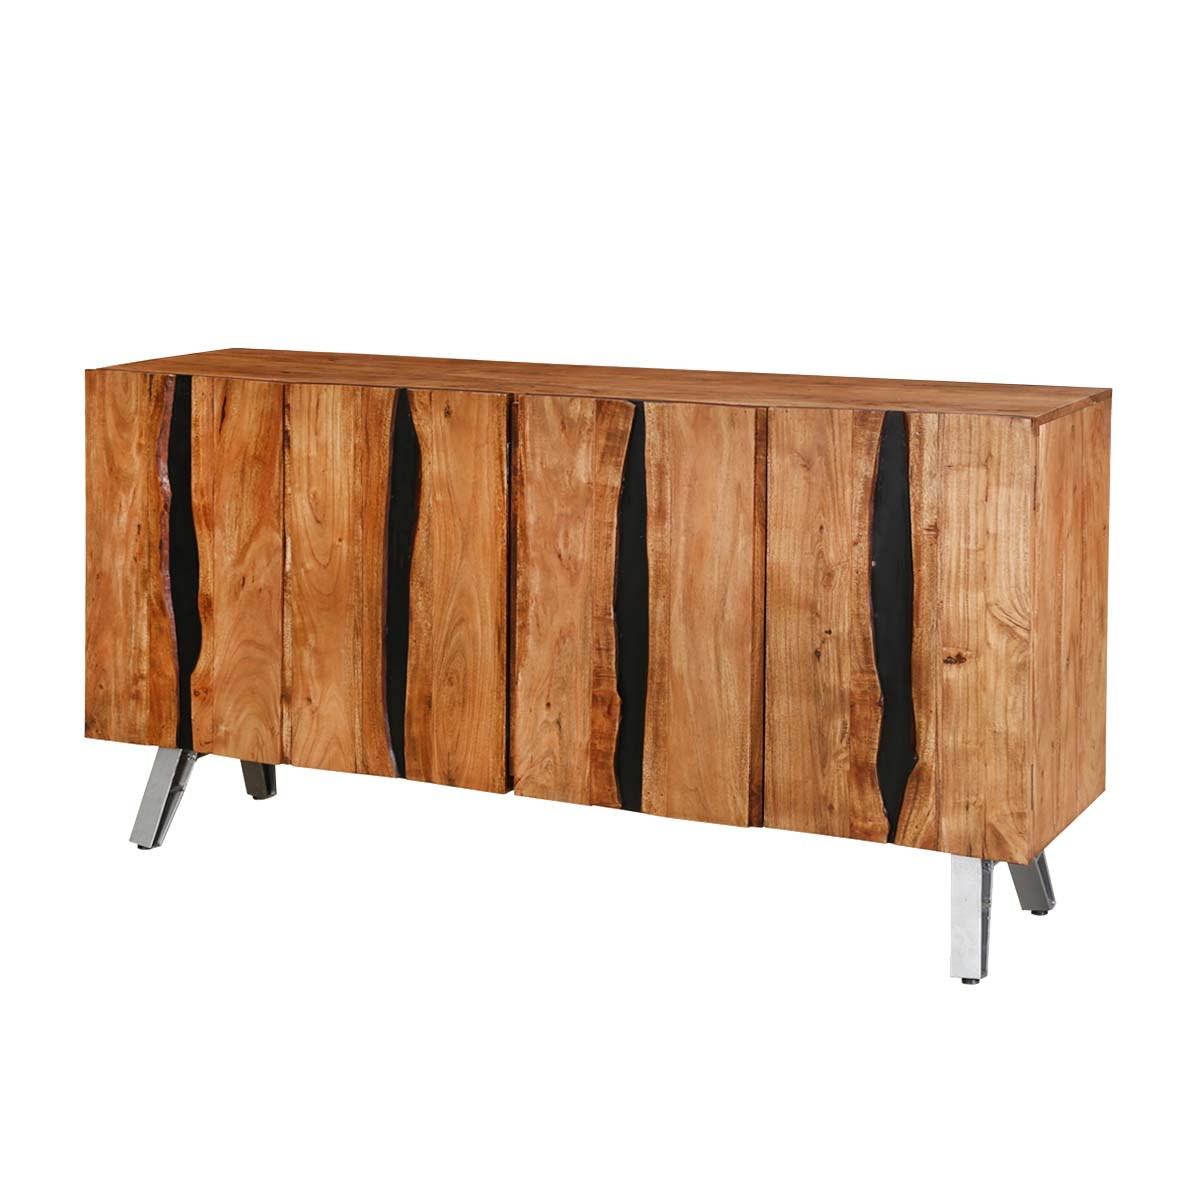 Acacia Wood Door : Saturn acacia wood door sideboard cabinet